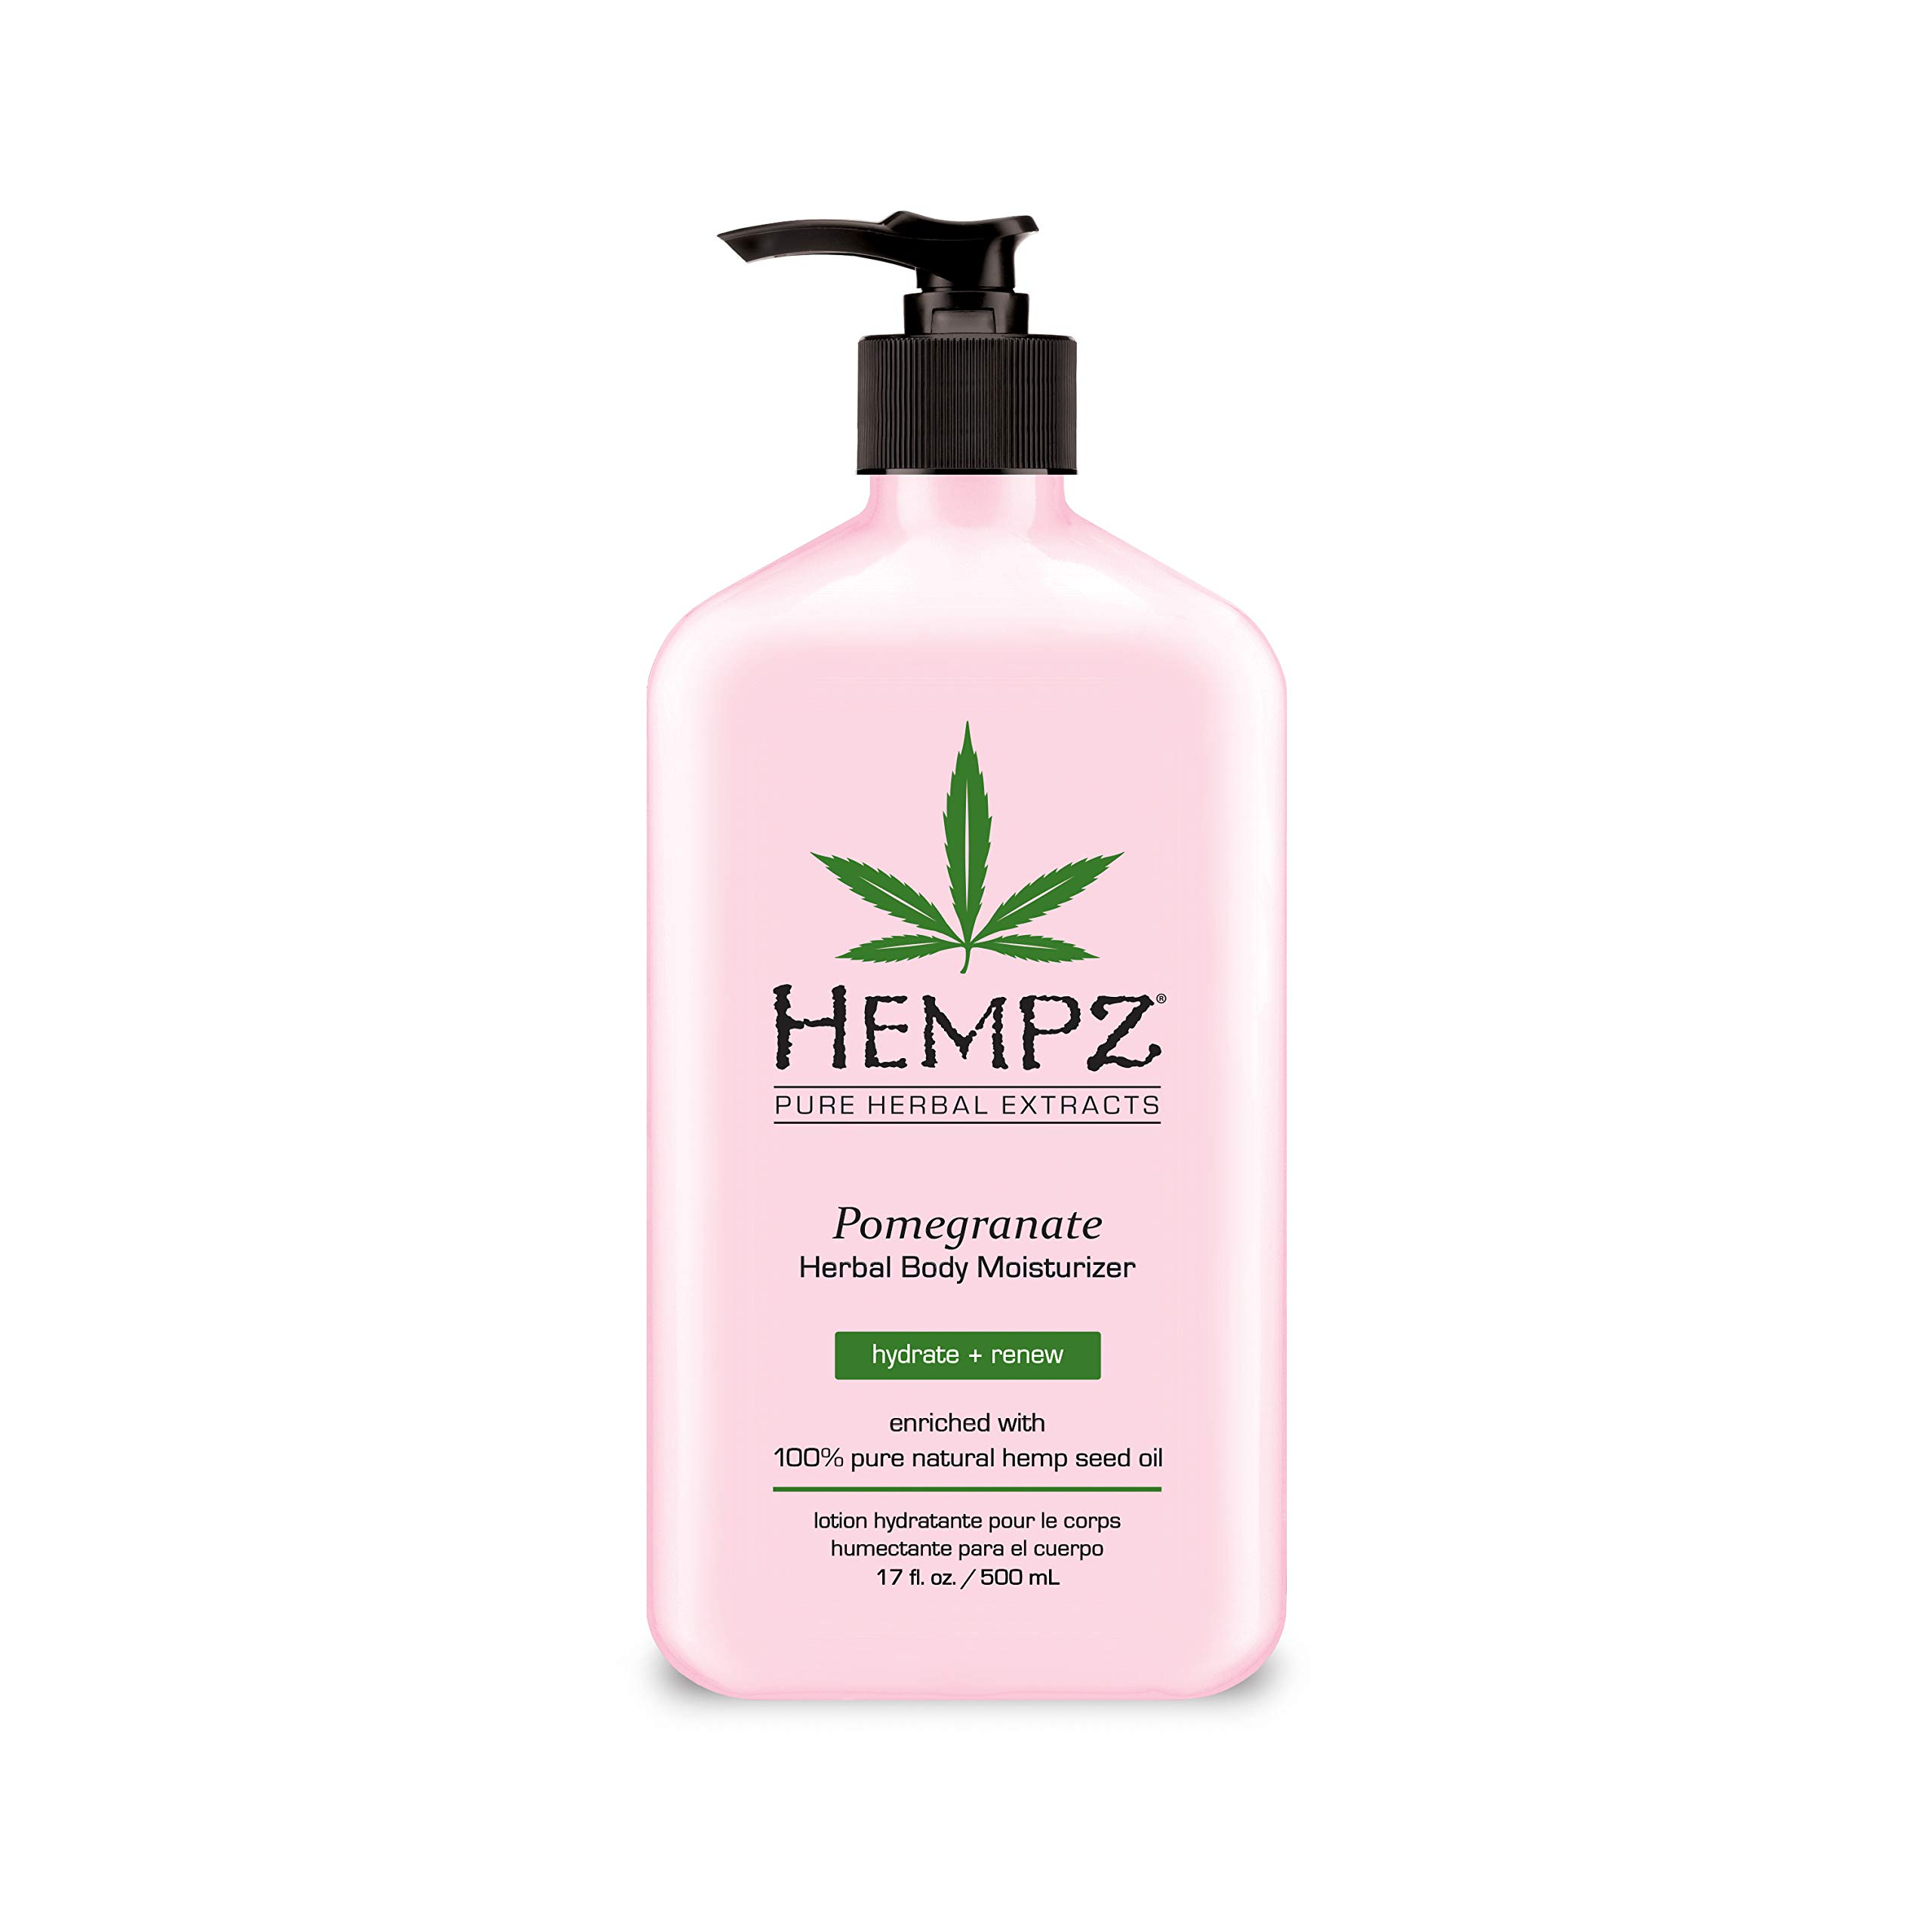 Hempz Pomegranate Herbal Body Moisturizer 17 oz. - Paraben-Free Lotion and Moisturizing Cream for All Skin Types, Anti-Aging Hemp Skin Care Products for Women and Men - Hydrating Gluten-Free Lotions by Hempz